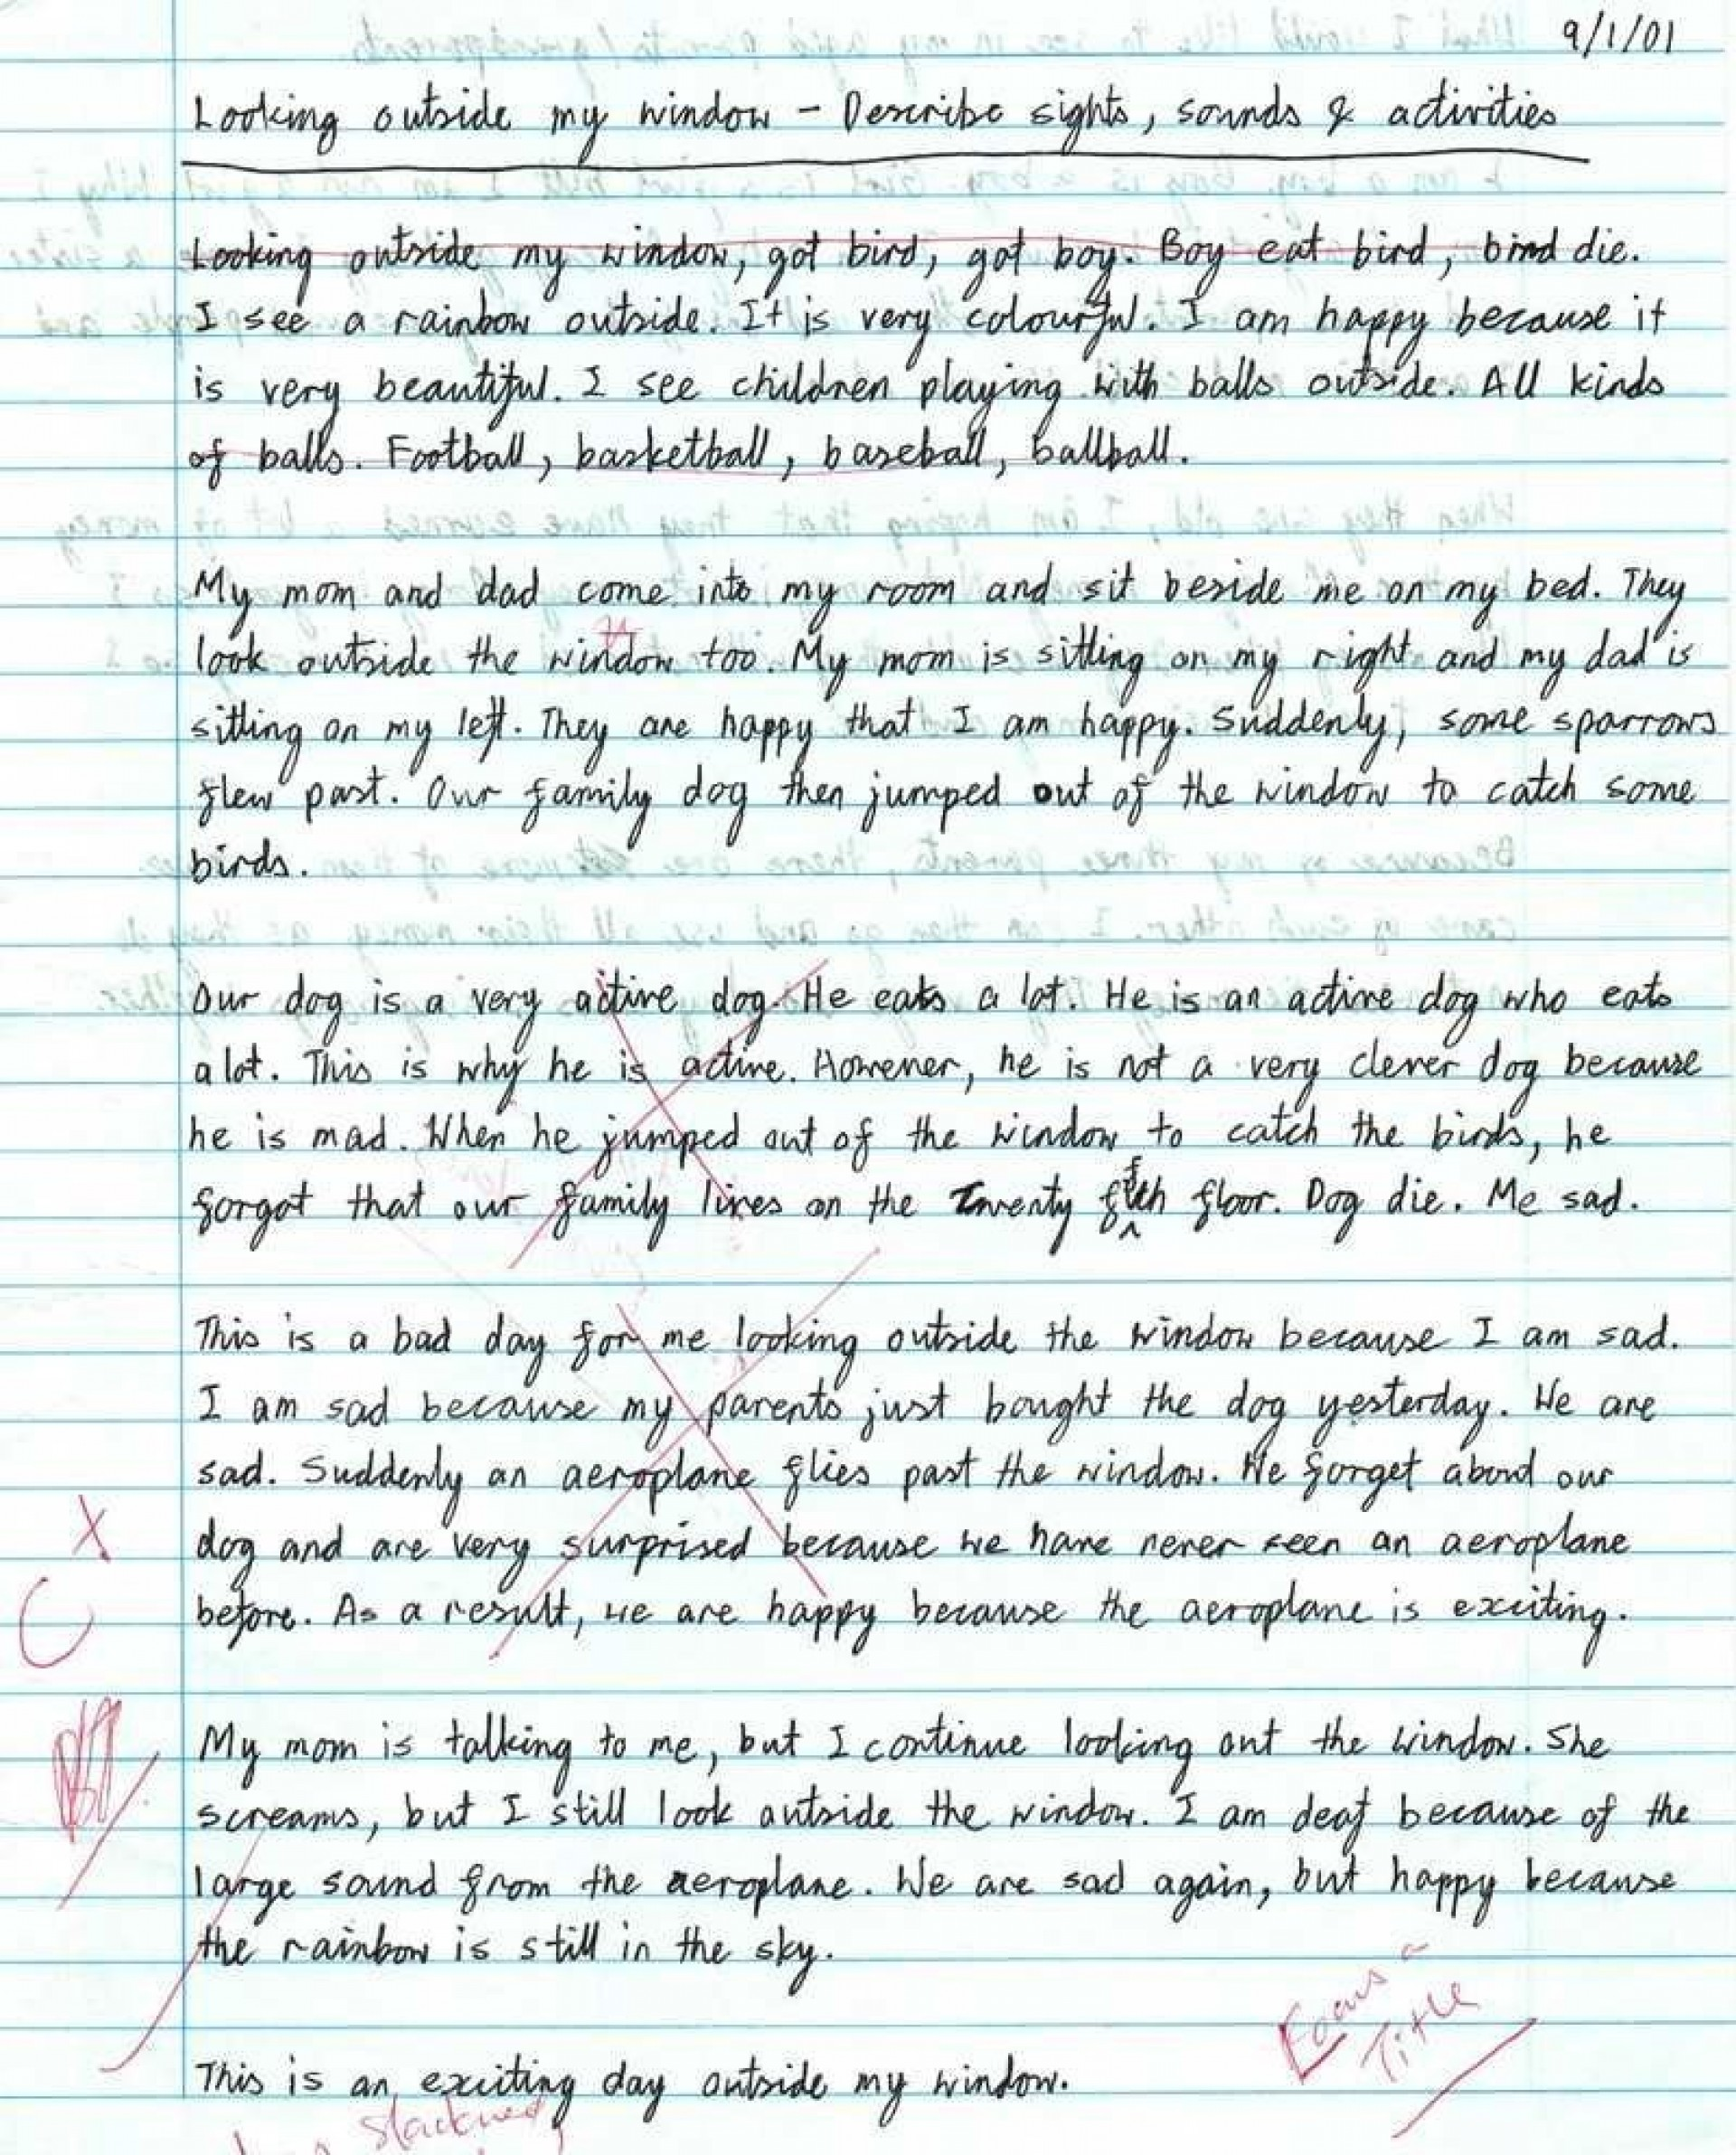 007 Essay Example Writing Striking A Creative About Yourself College Outline 5 Steps To 1920